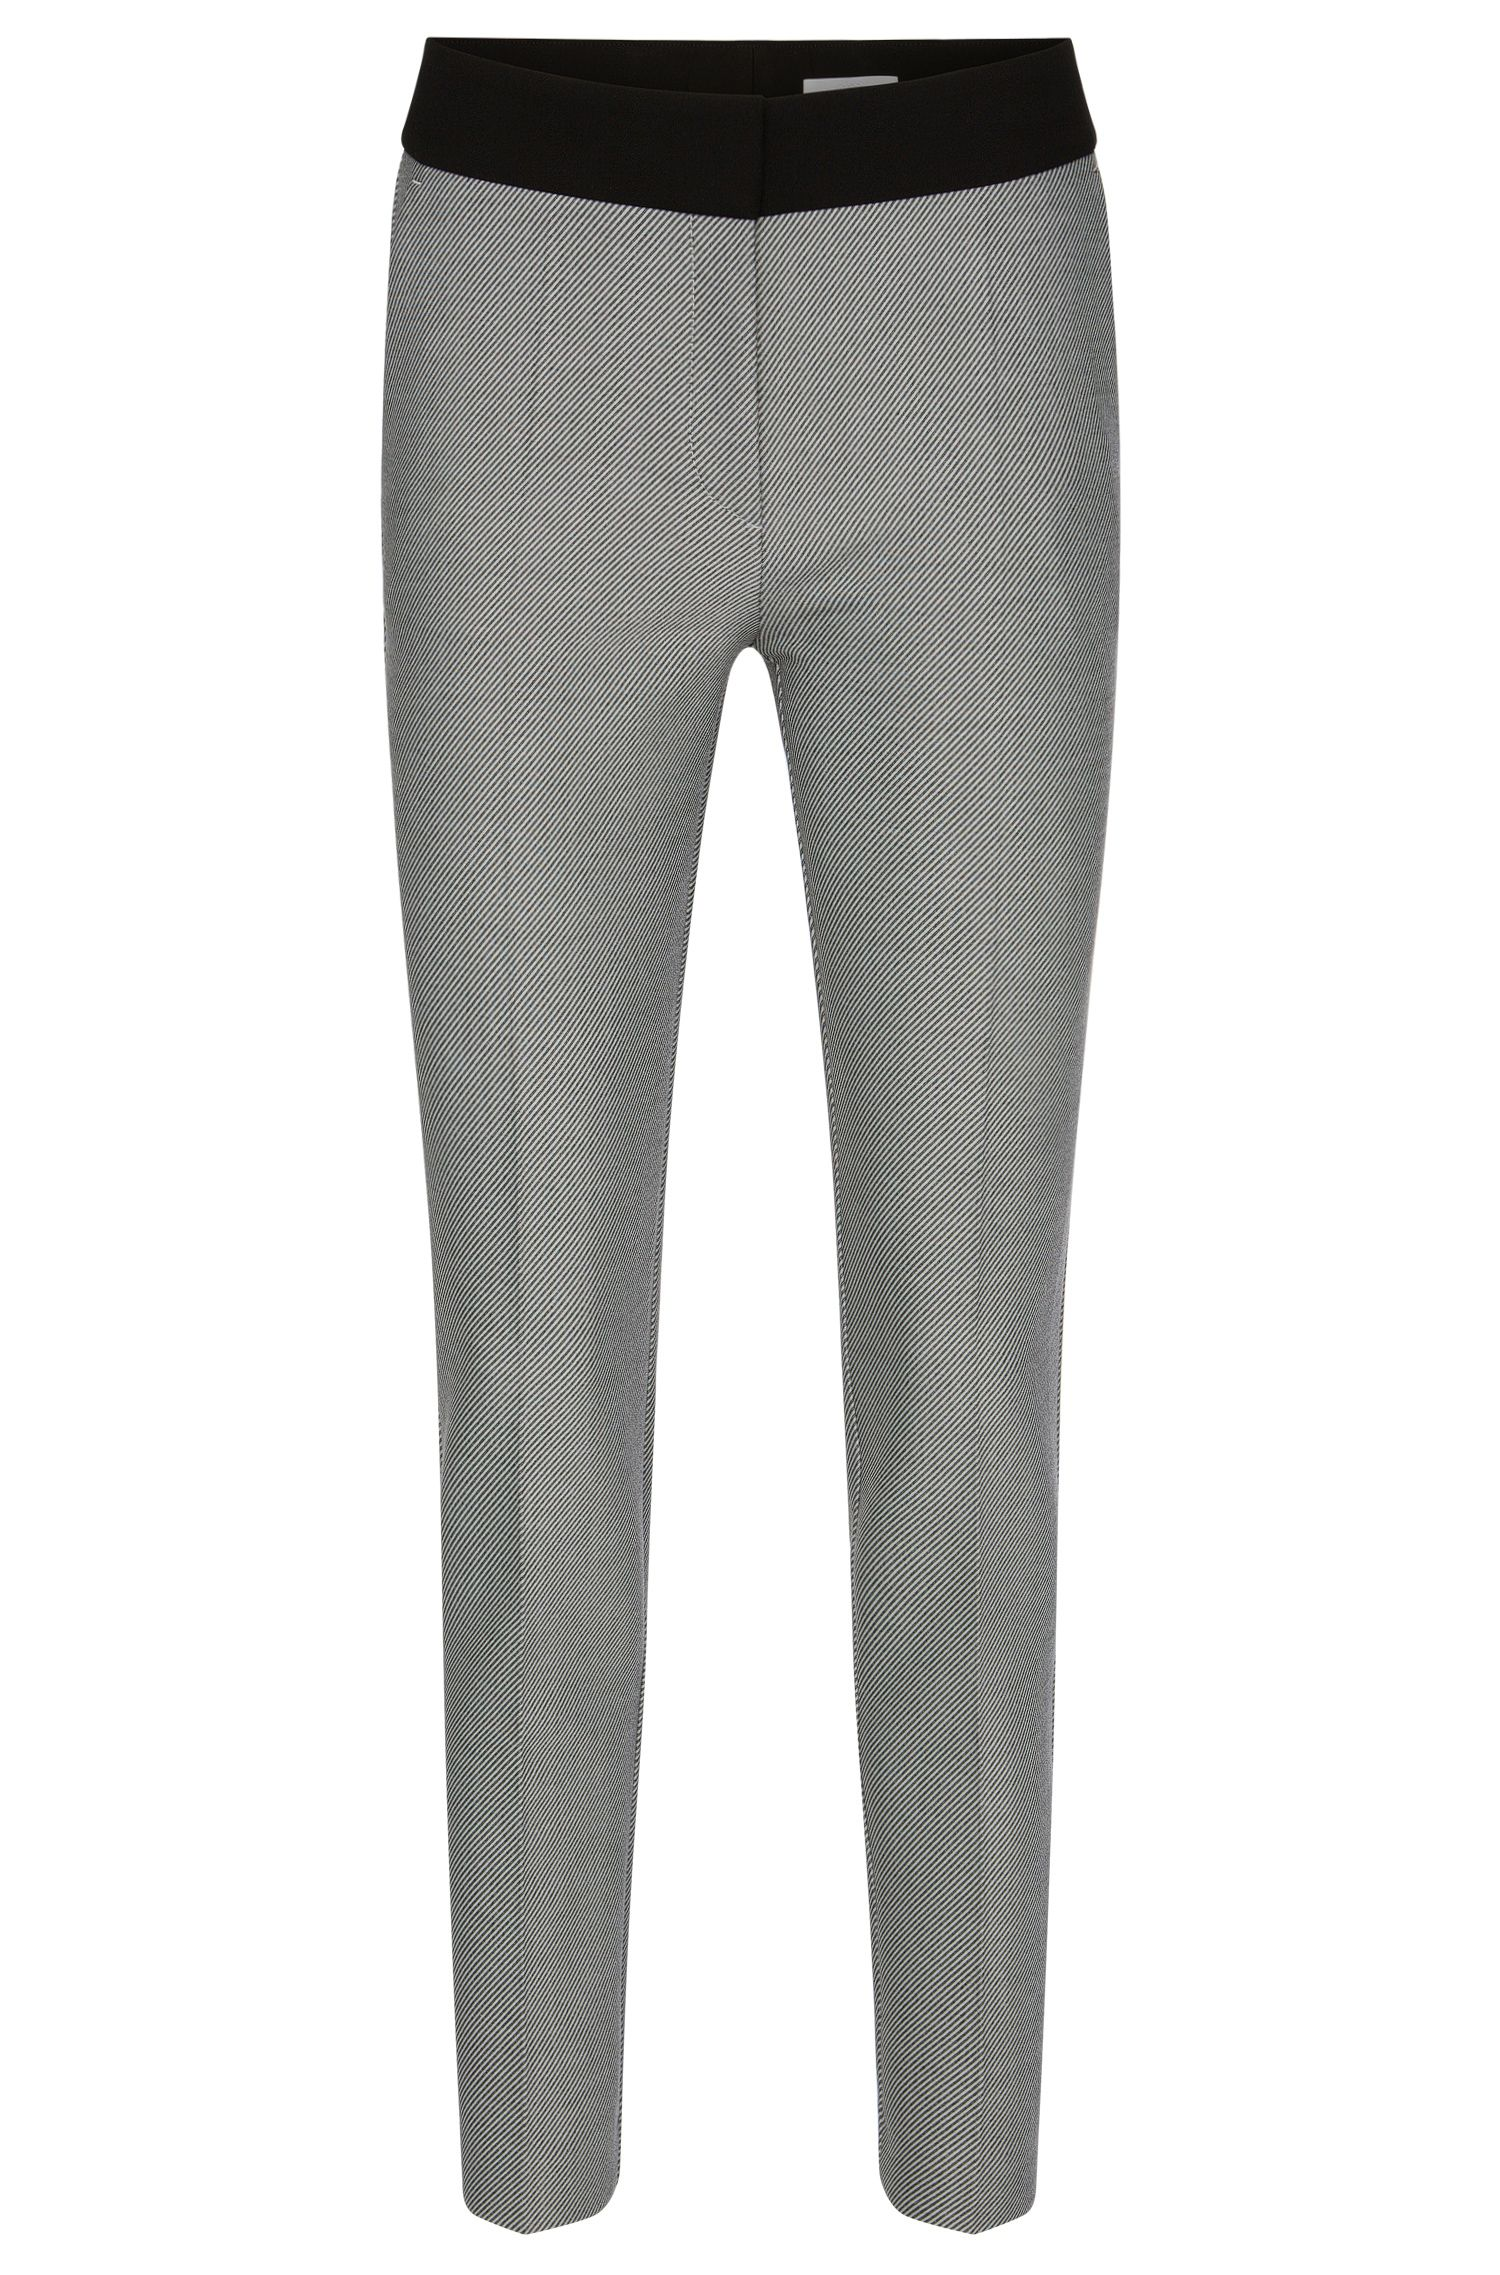 Stretch Contrast Twill Stripe Dress Pant | Acnella